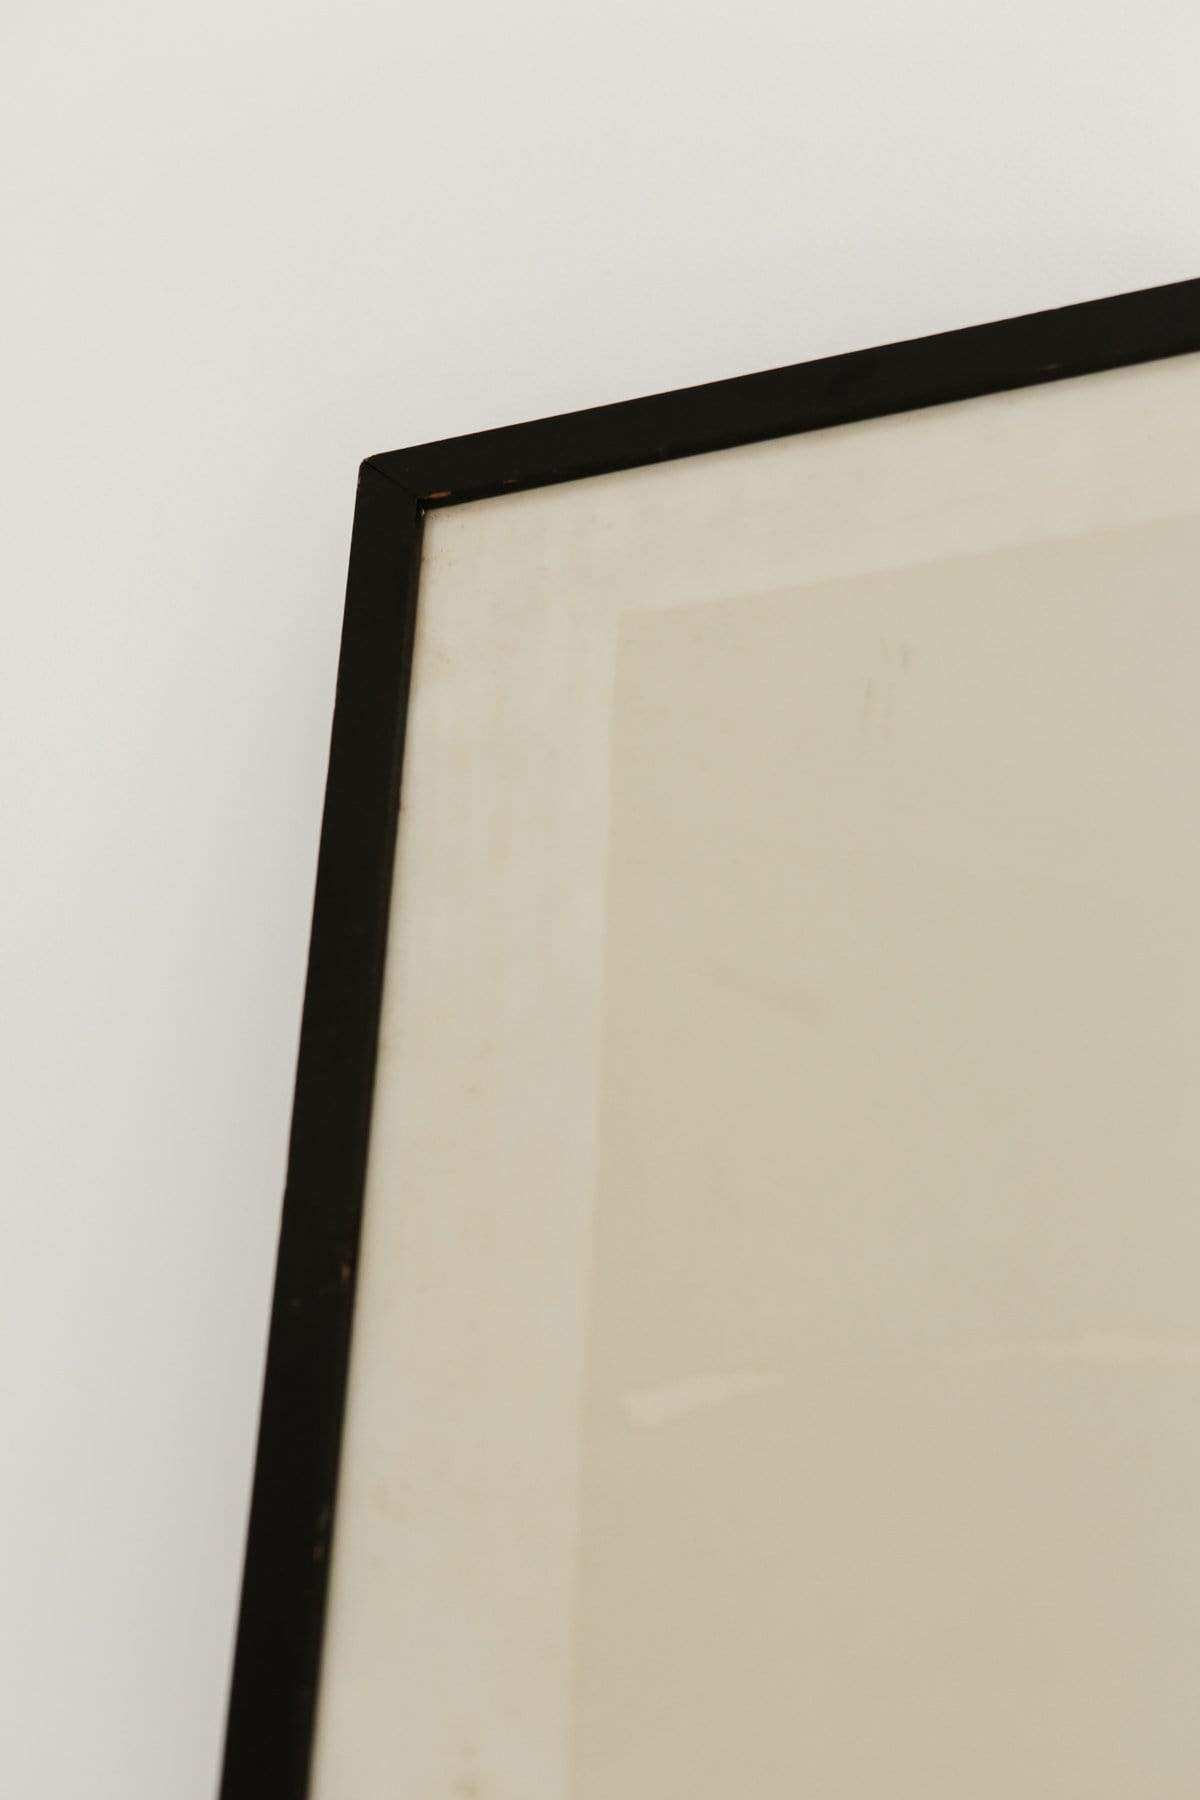 Rare Pablo Picasso Framed Lithograph of a Male Figure - Nice Vintage Things